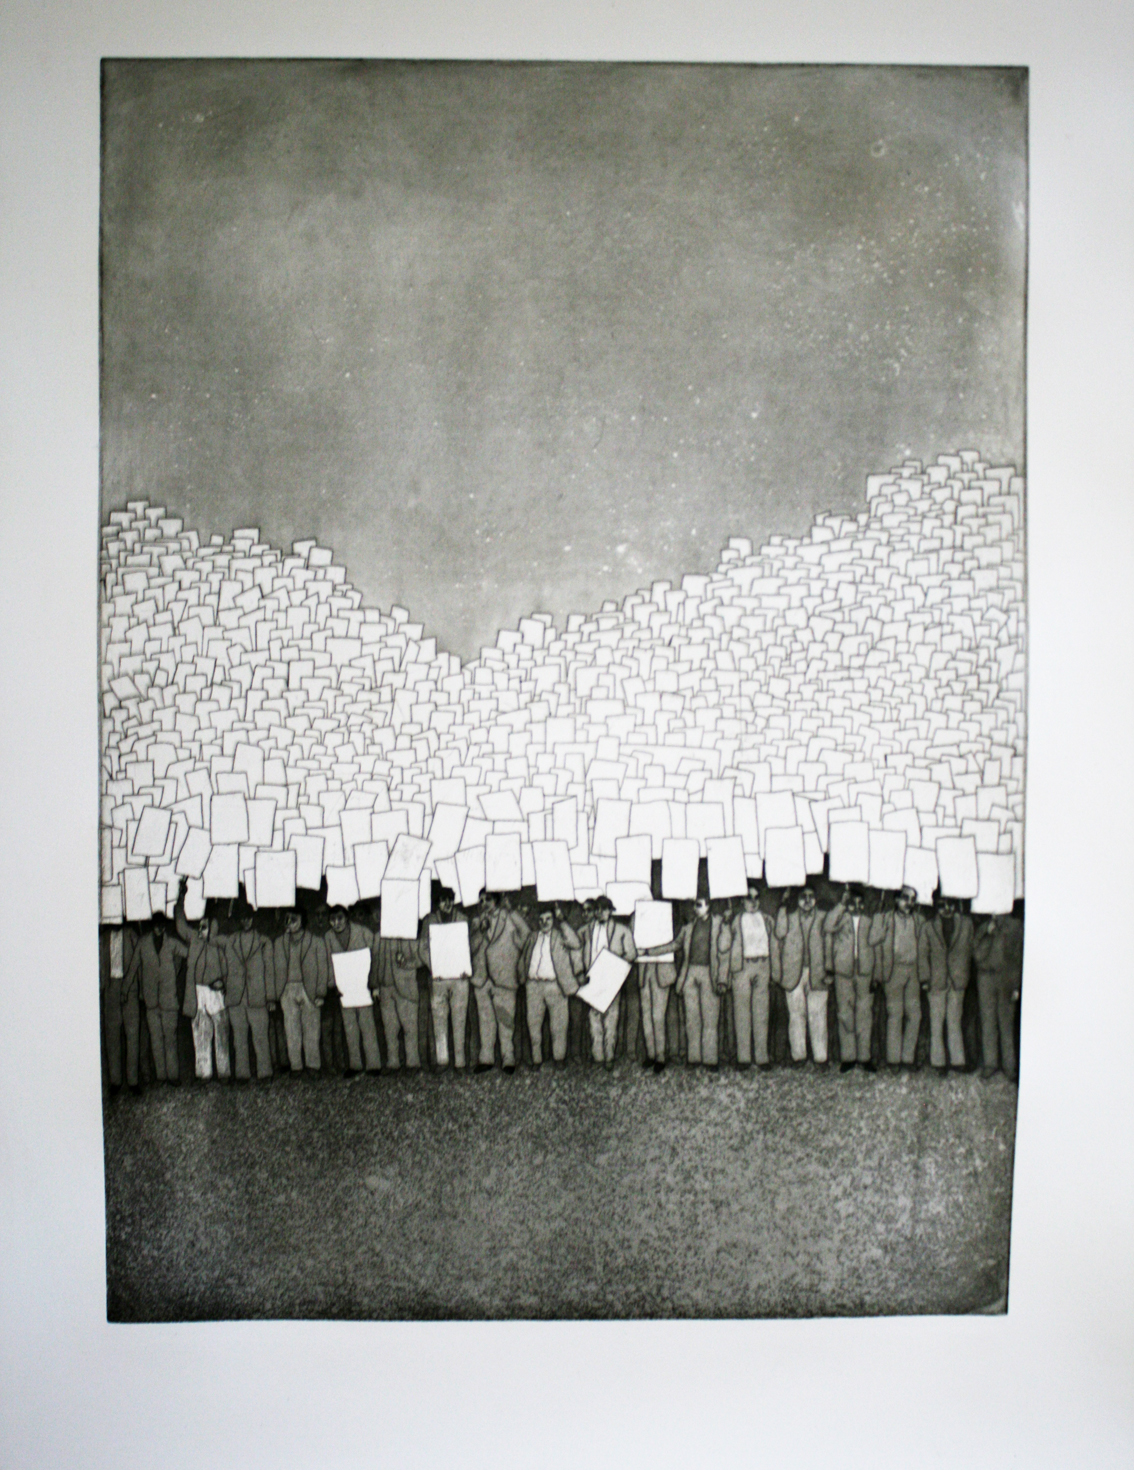 Kevin Clancy, The Walk for                      , 2008, Intaglio with aquatint